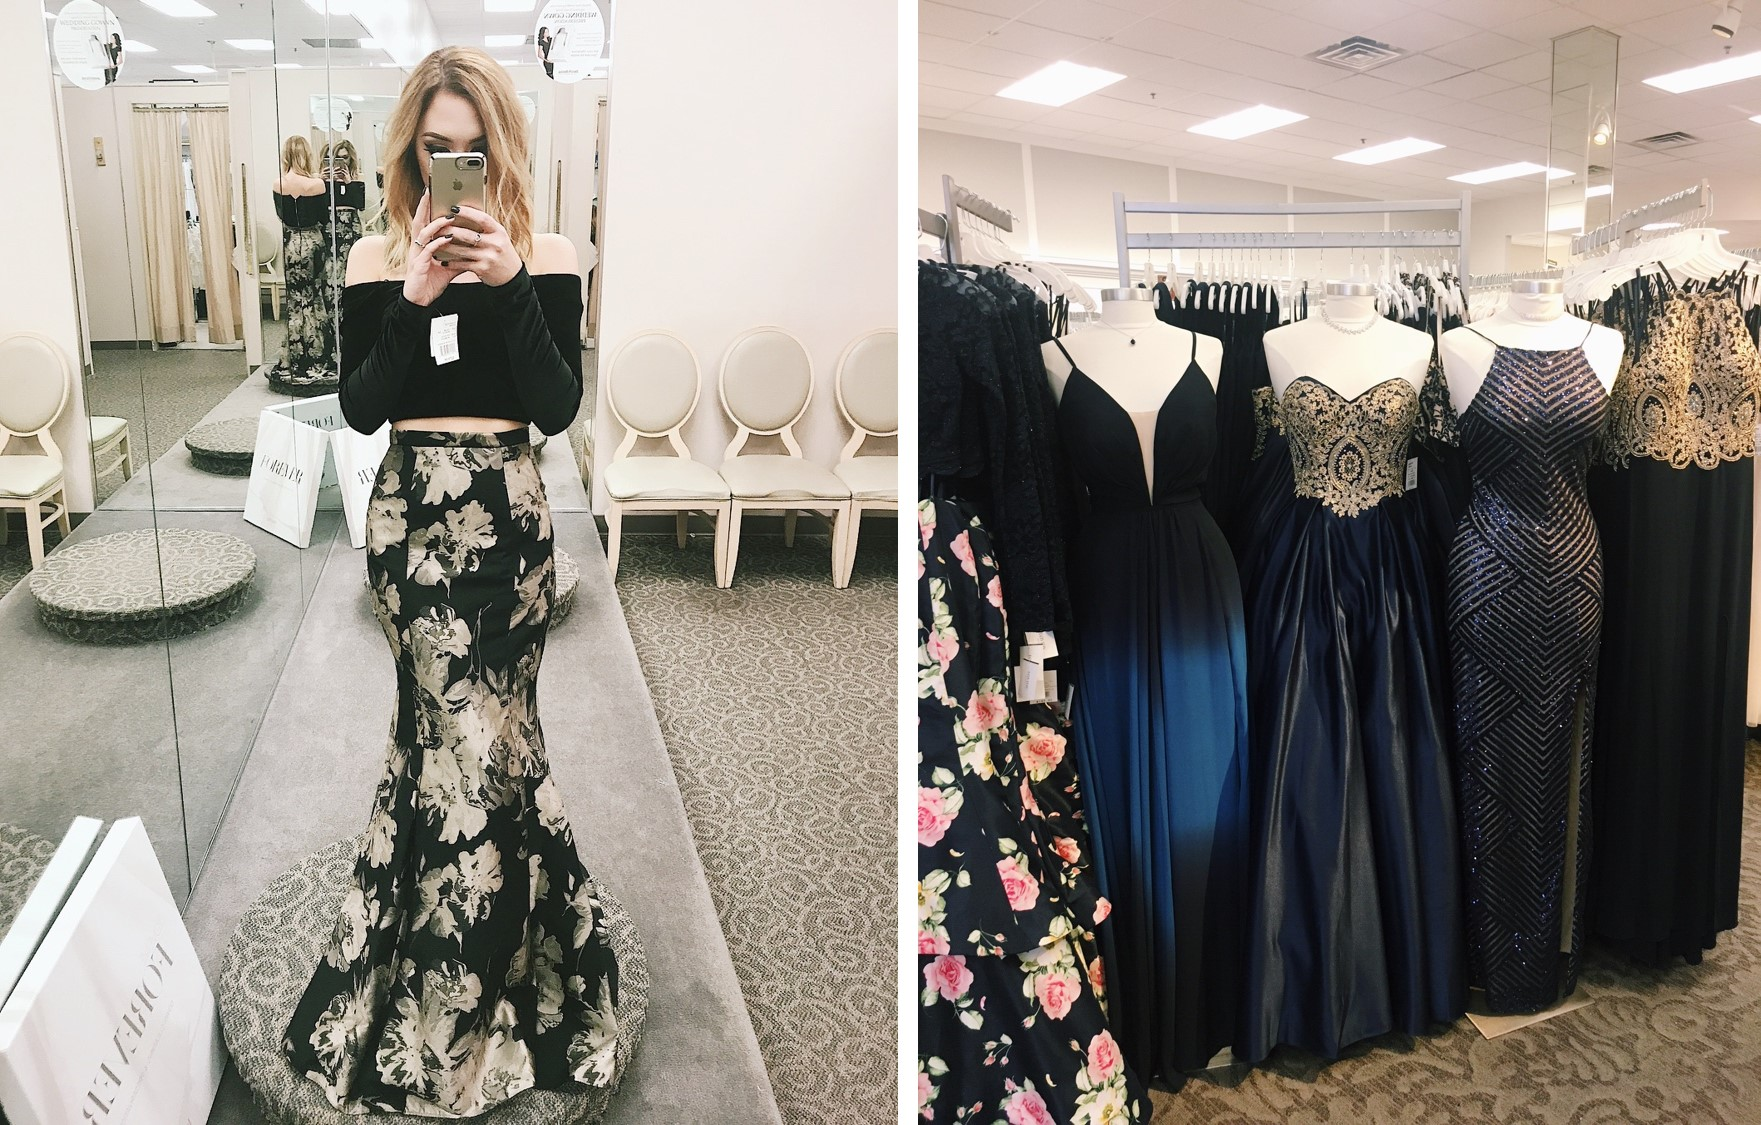 Mirror photo of girl in two piece prom dress and a rack of prom dresses